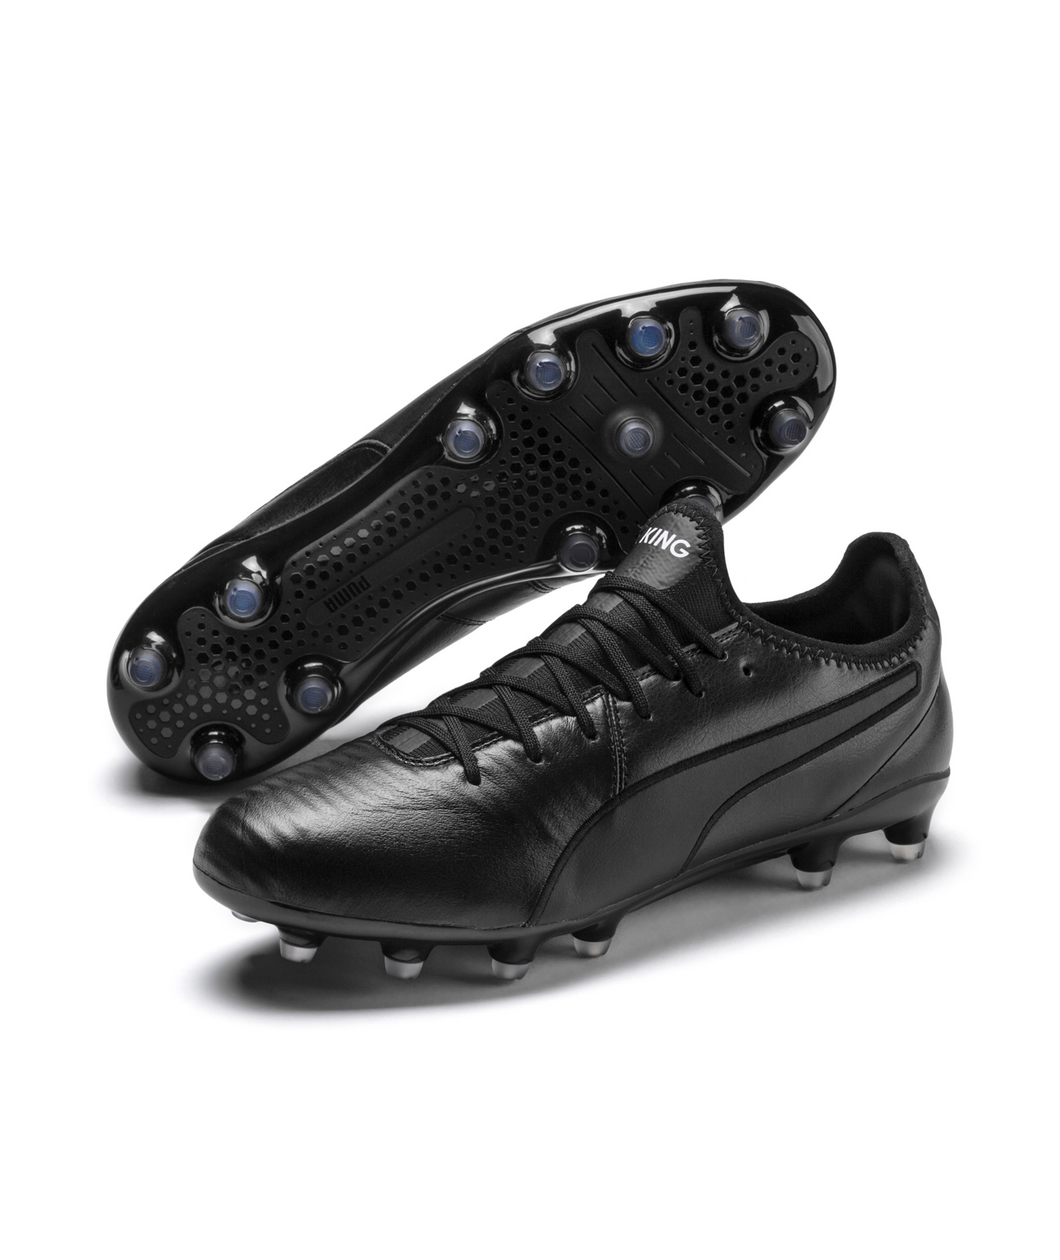 PUMA KING PRO FG CLEATS - 105608